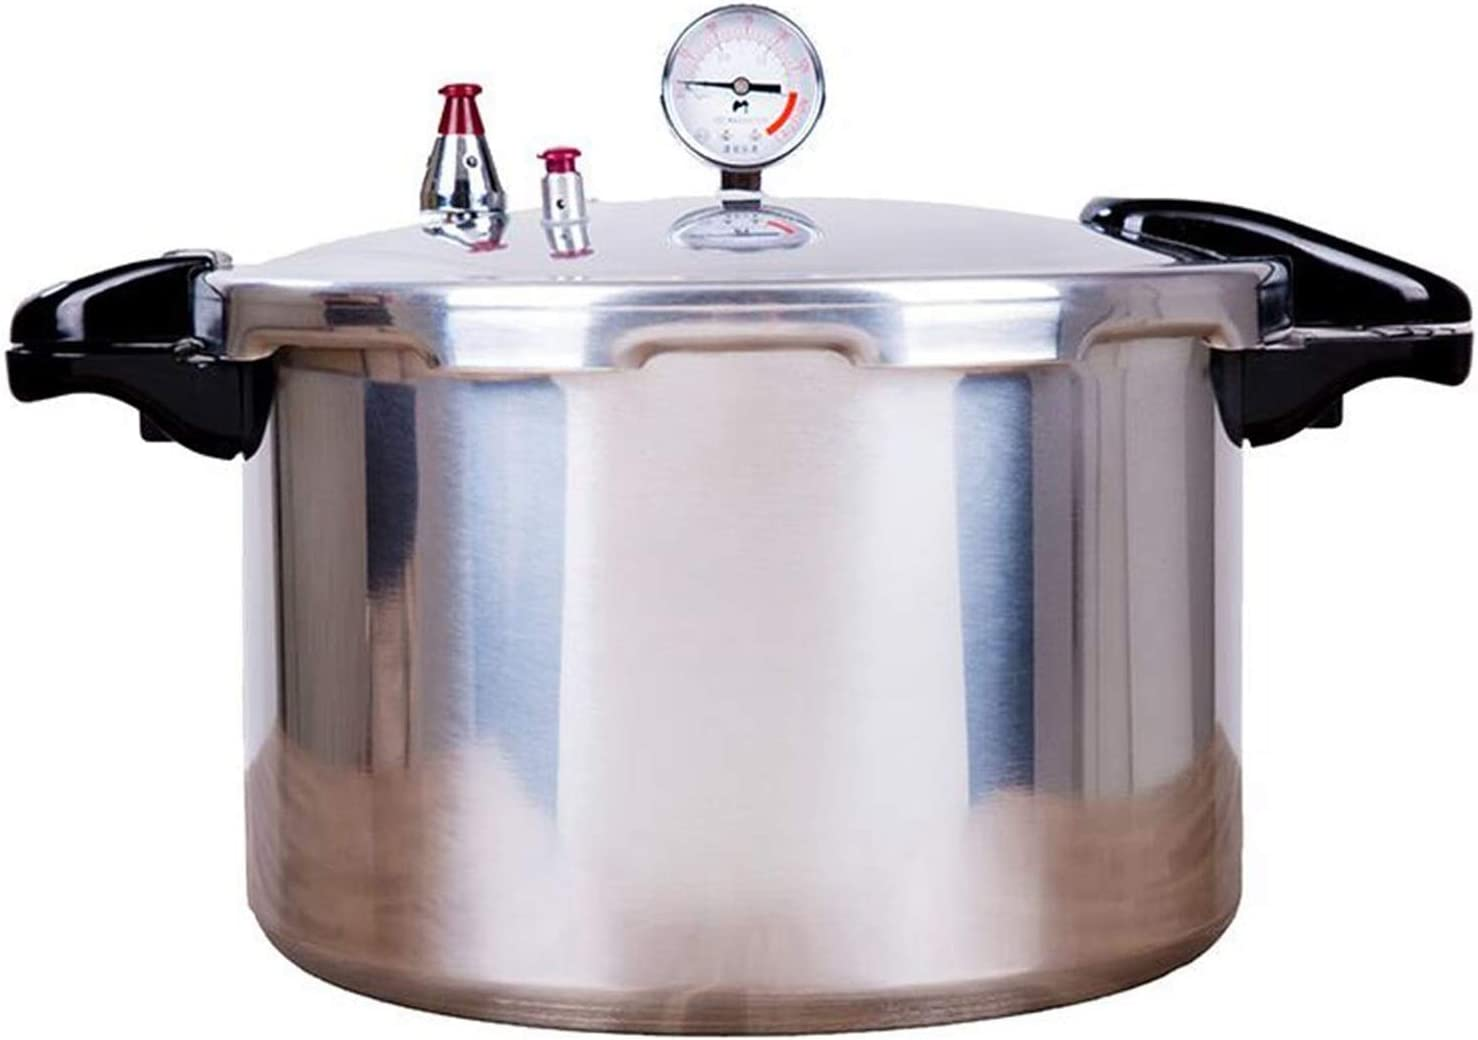 15-22 Quart Canned Food Pressure Cooker, Commercial Aluminum Gas Stove Open Flame Cookare Steam Stew Soup Pot, Hotel Restaurant Chef Multifunctional High Pressure Pot (15L)